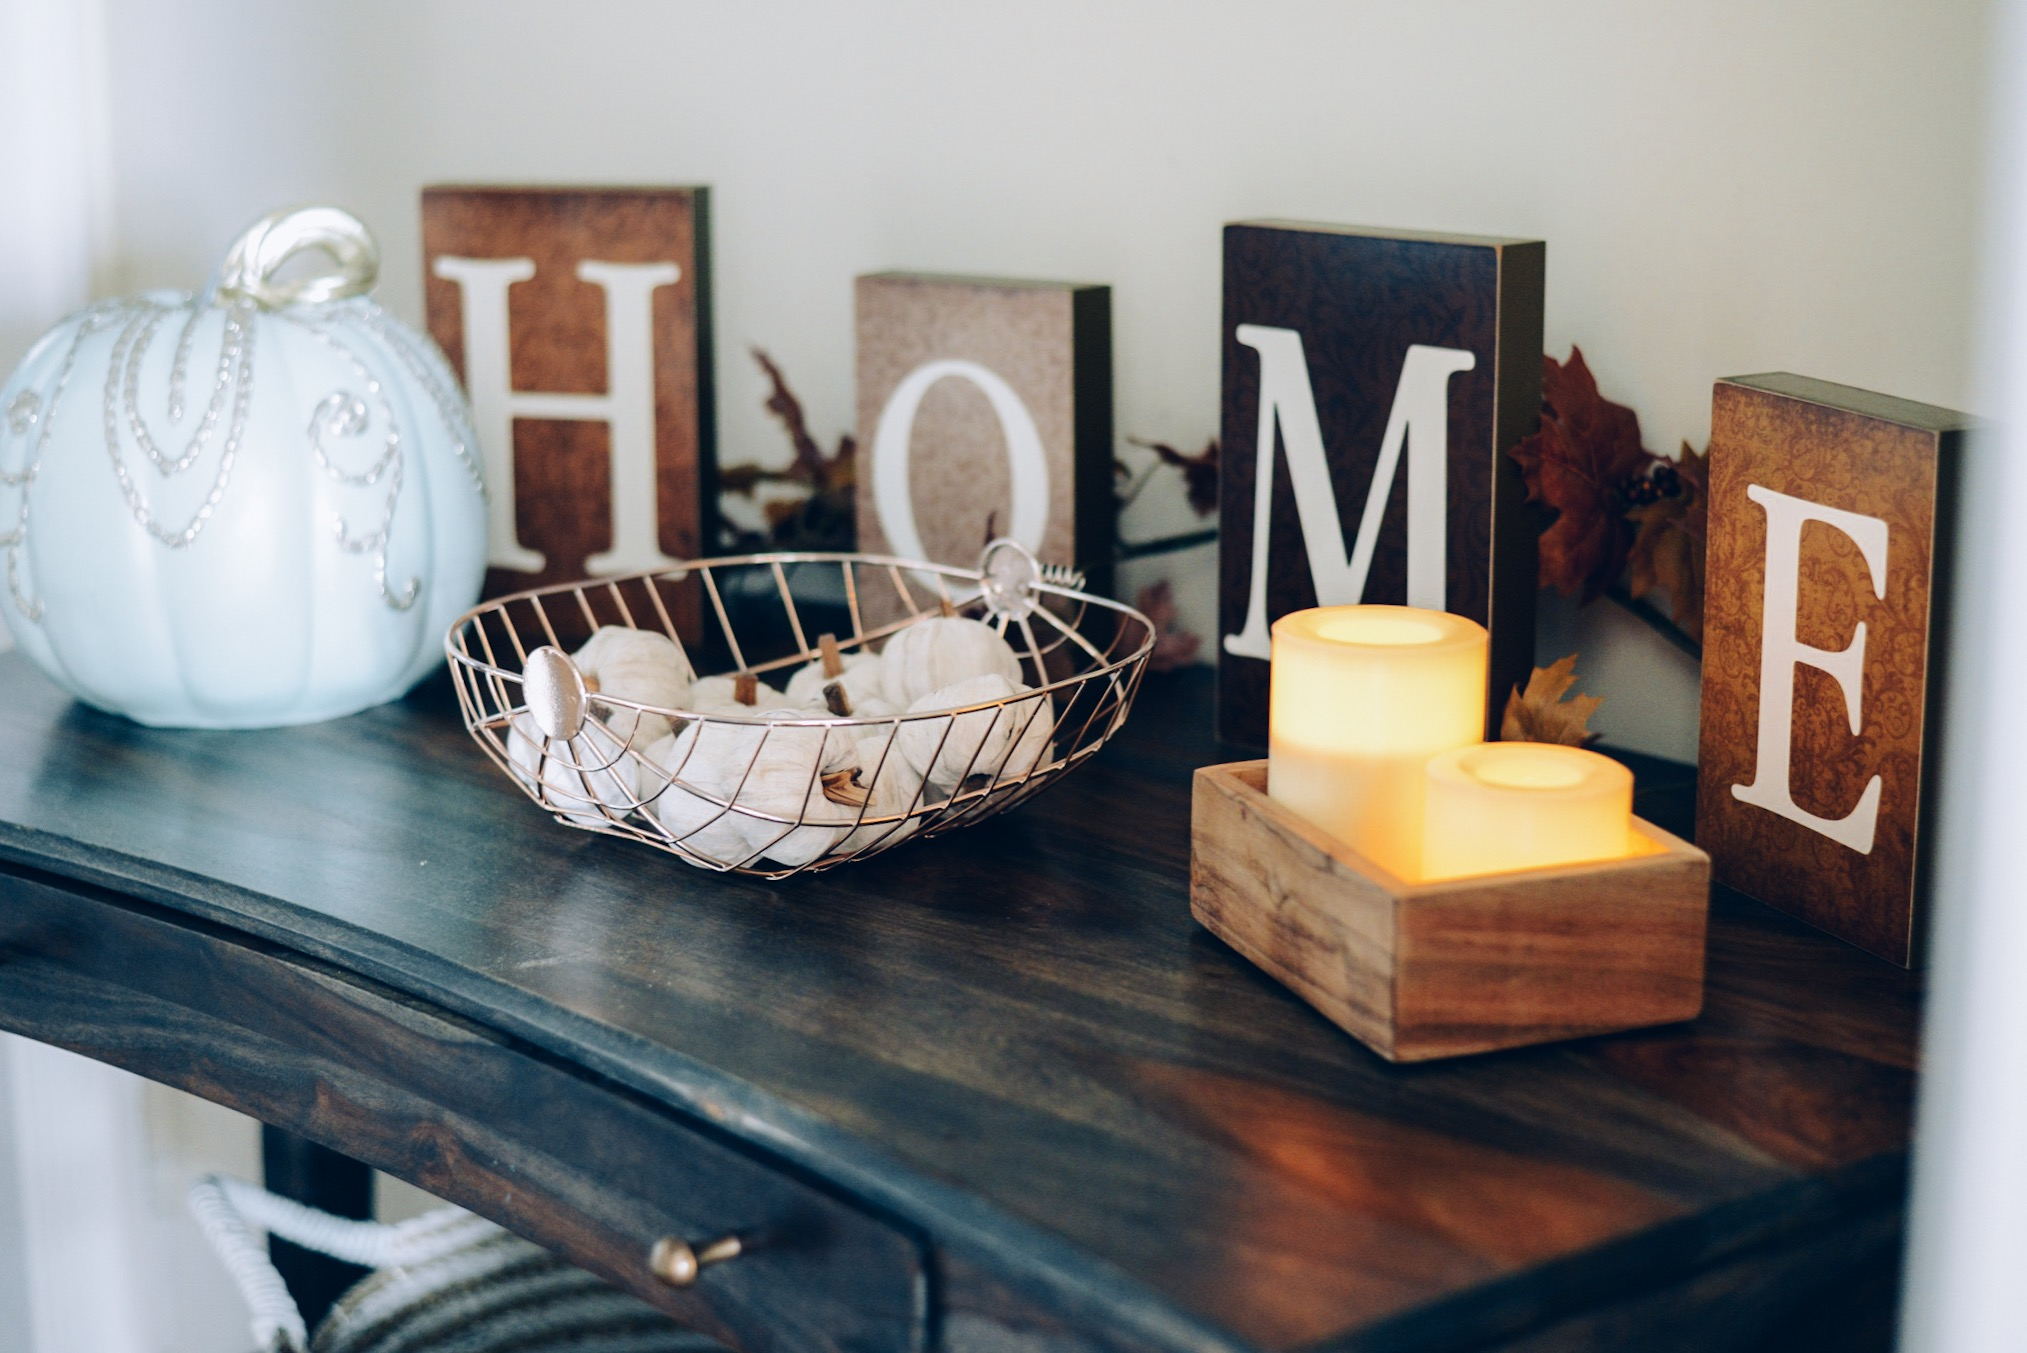 How I Decorated My Home Interior for Fall- Target dollar spot wire pumpkin basket and white pumpkin potpourri, home sign, sparkly pumpkin